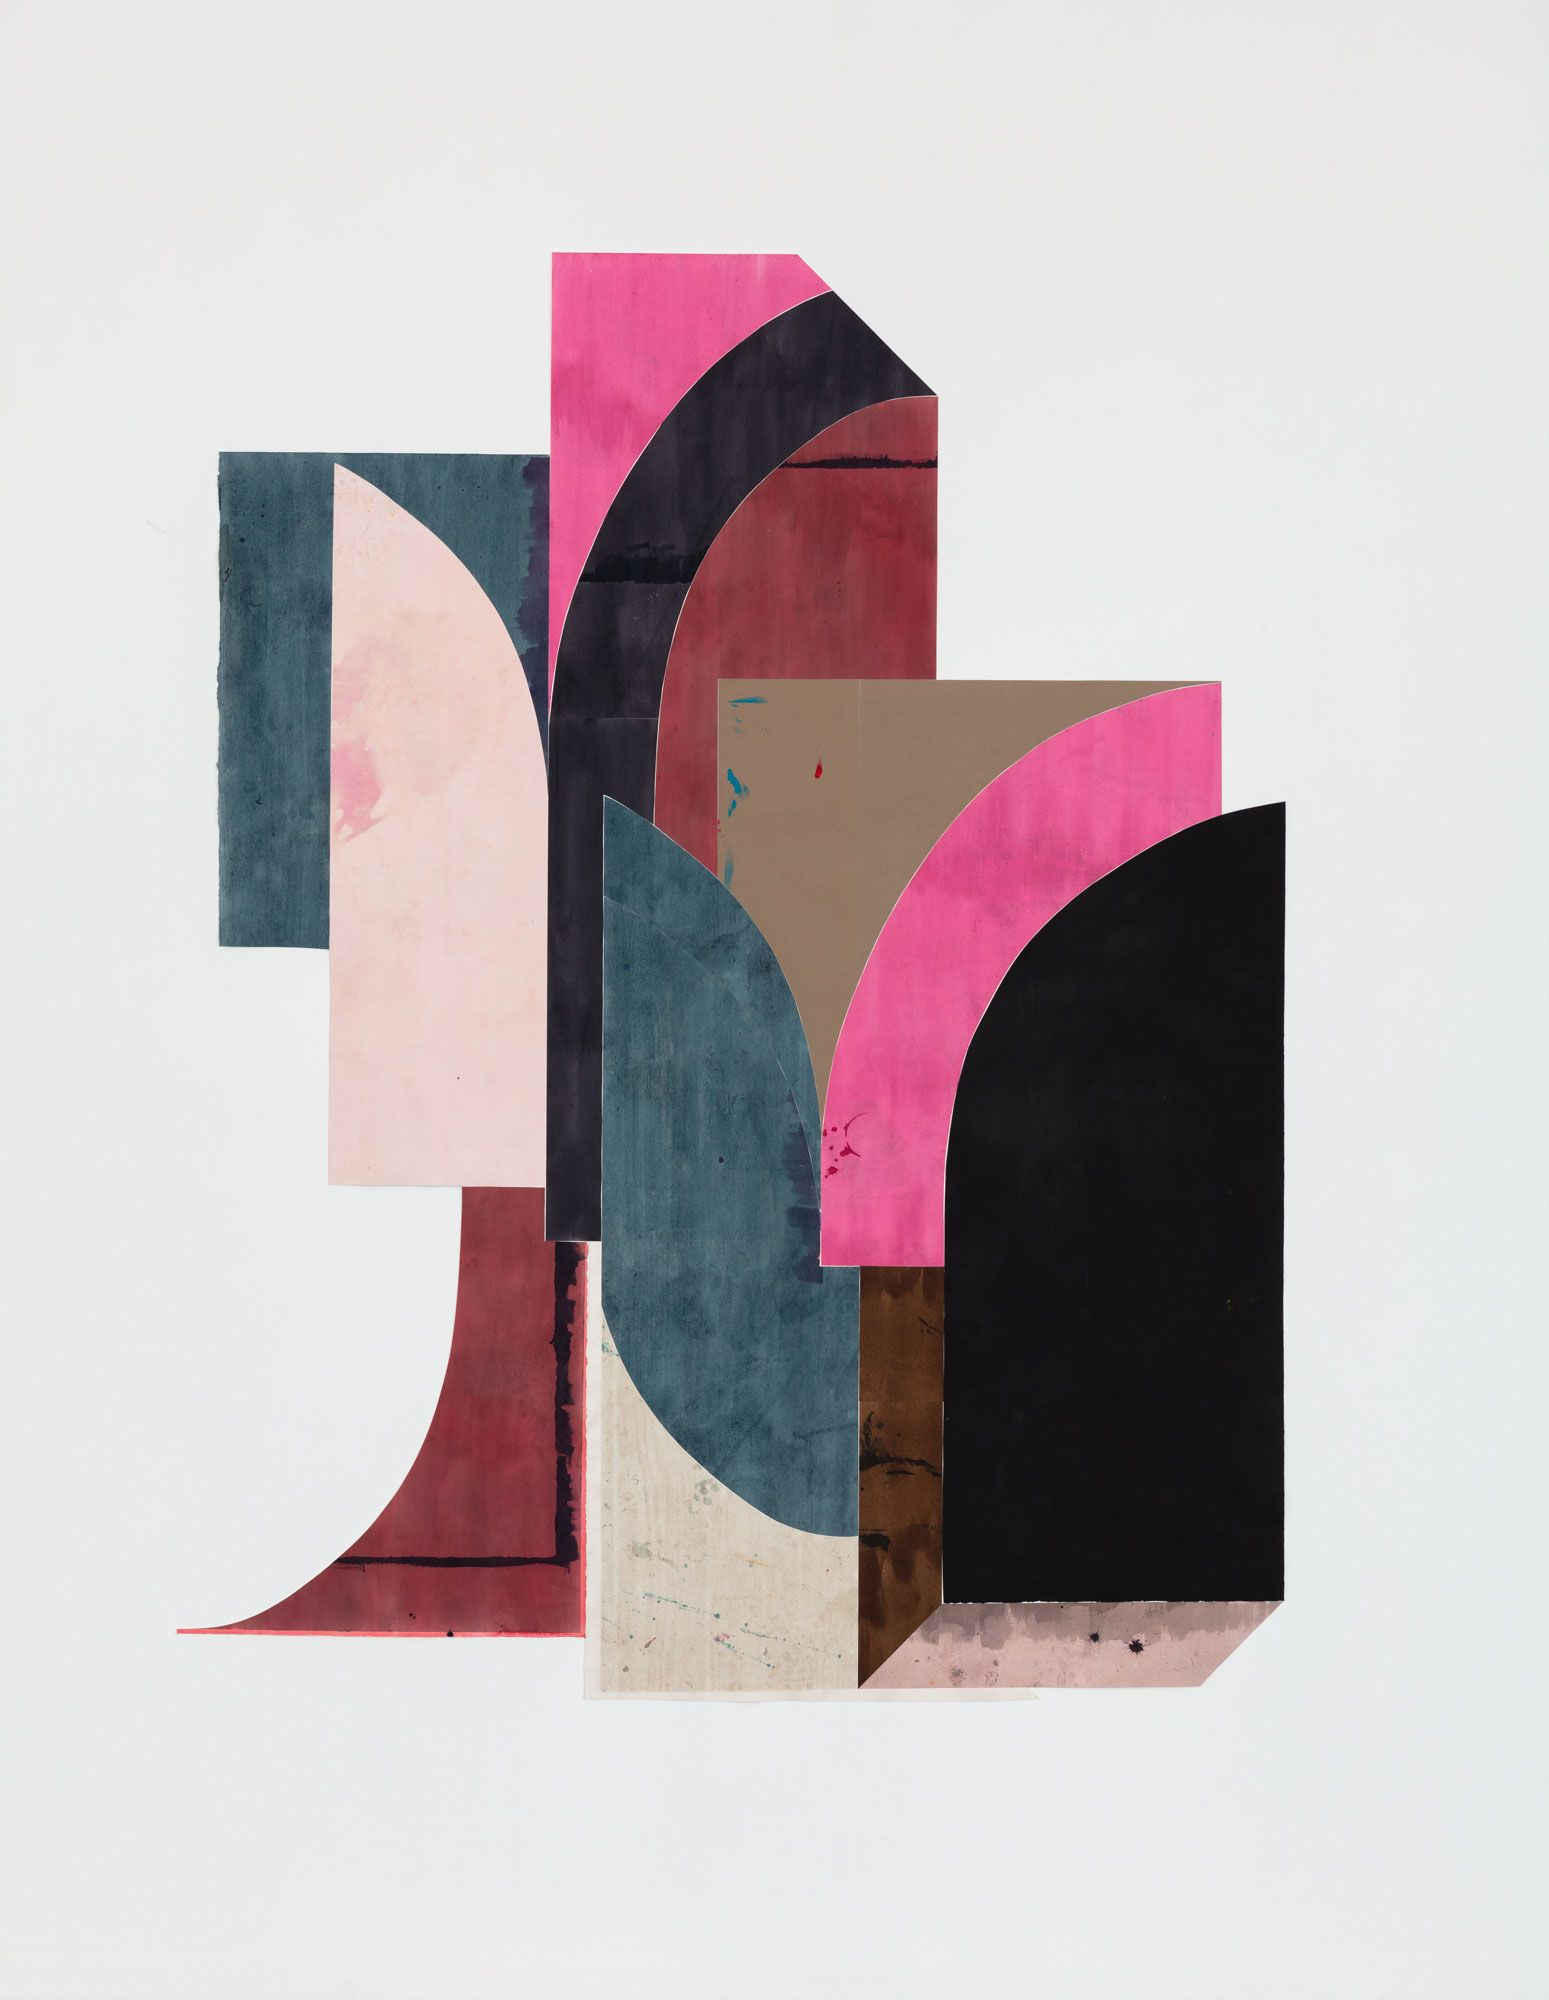 Untitled (floor paper, 2 large curves touching)